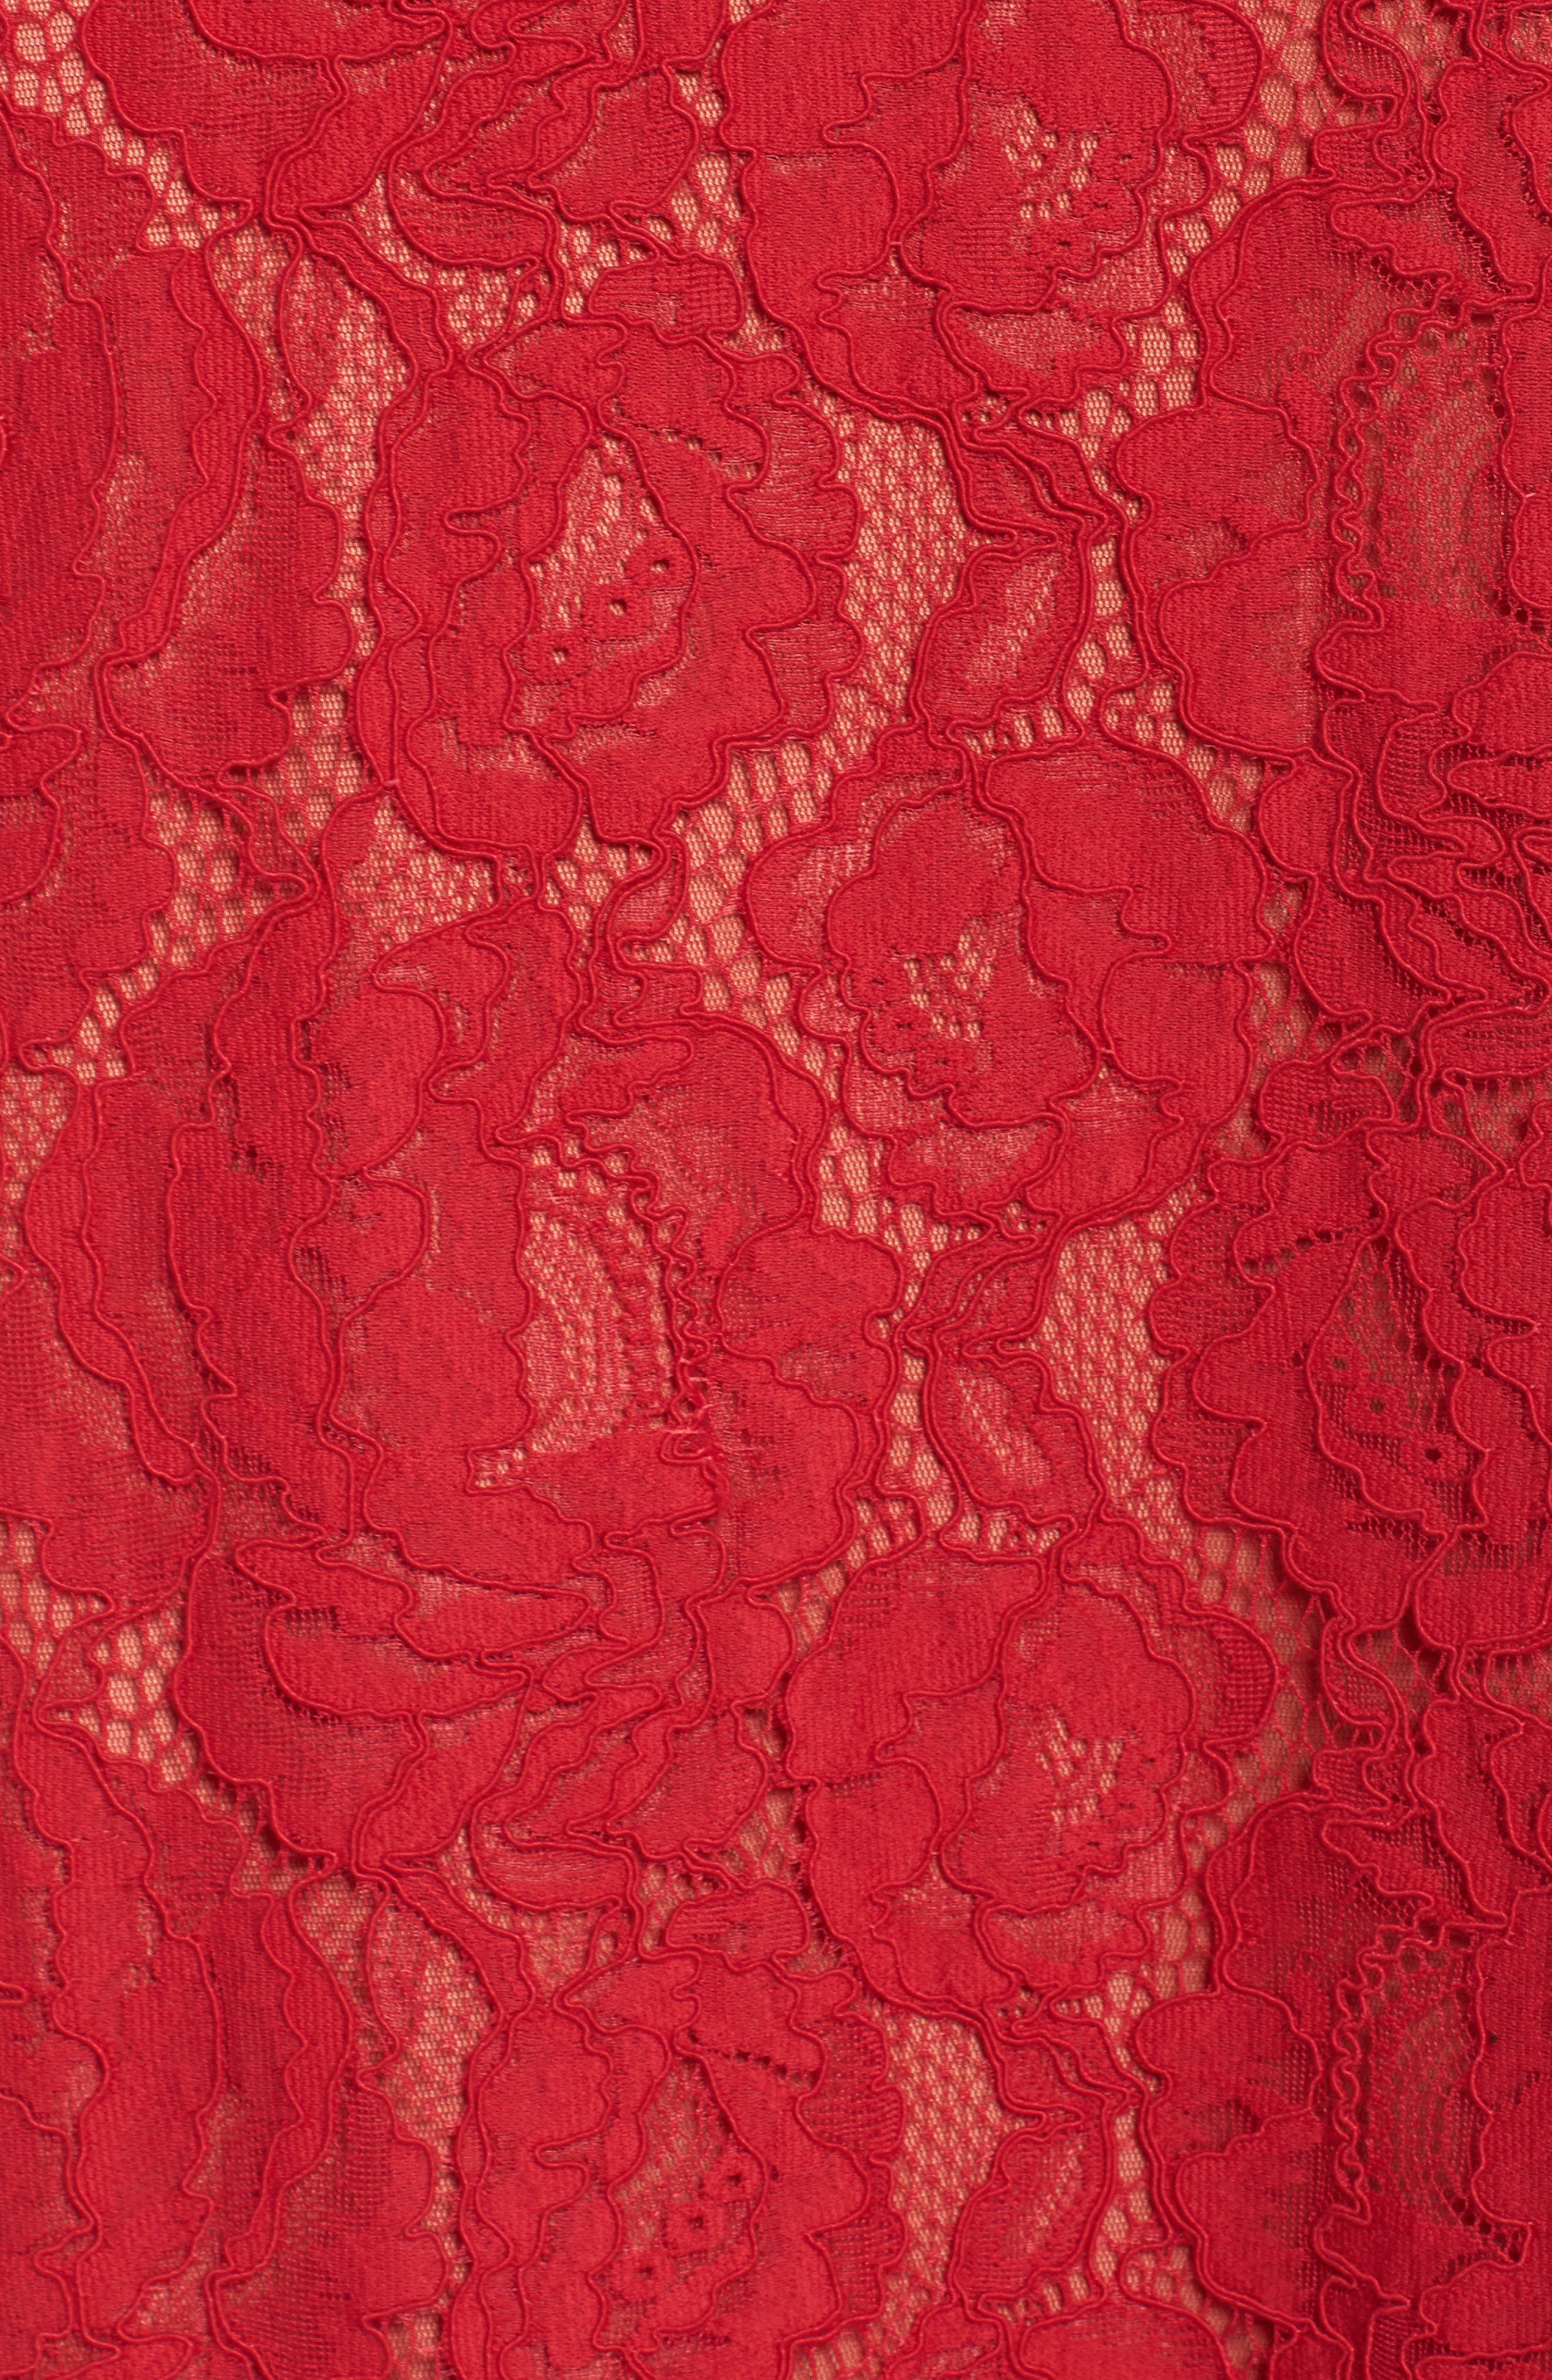 Corded Lace Gown,                             Alternate thumbnail 5, color,                             625